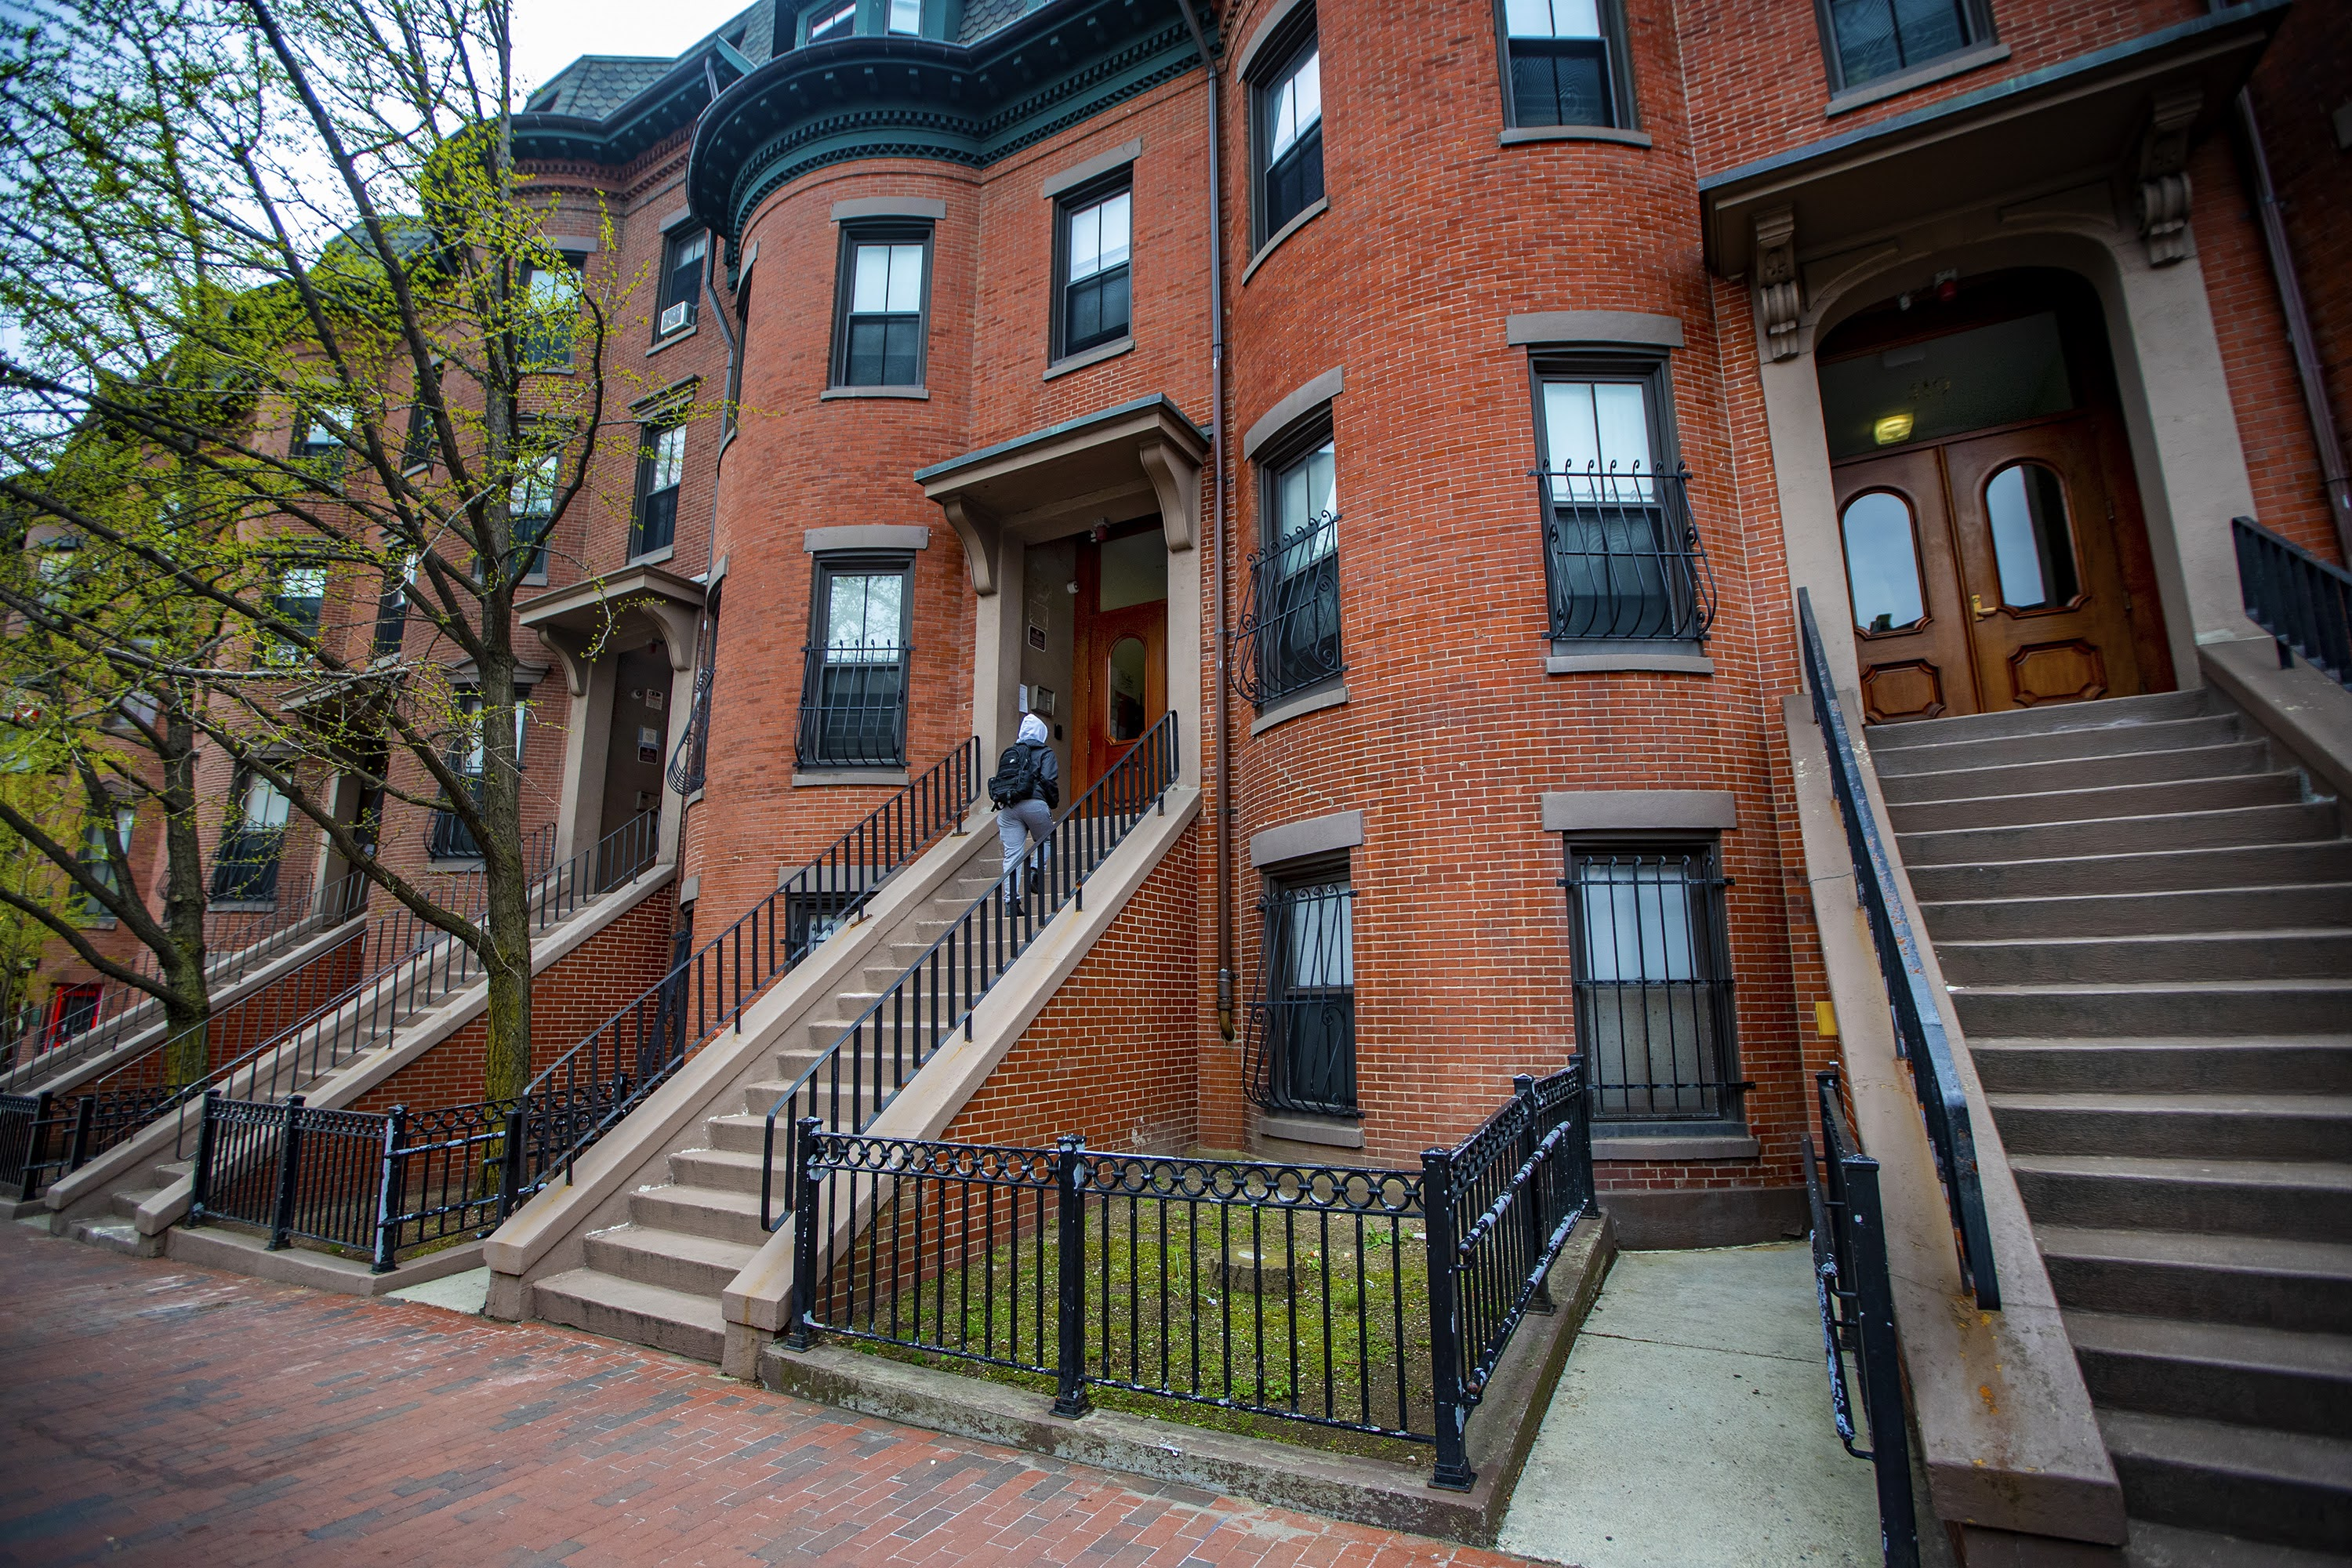 A resident of 421 Massachusetts Avenue walks up the stairs to enter her apartment, one of the building owned by the Tenants Development Corporation (TDC). All four buildings shown here, 419 - 425 Massachusetts Avenue, are owned and operated by TDC. (Jesse Costa/WBUR)